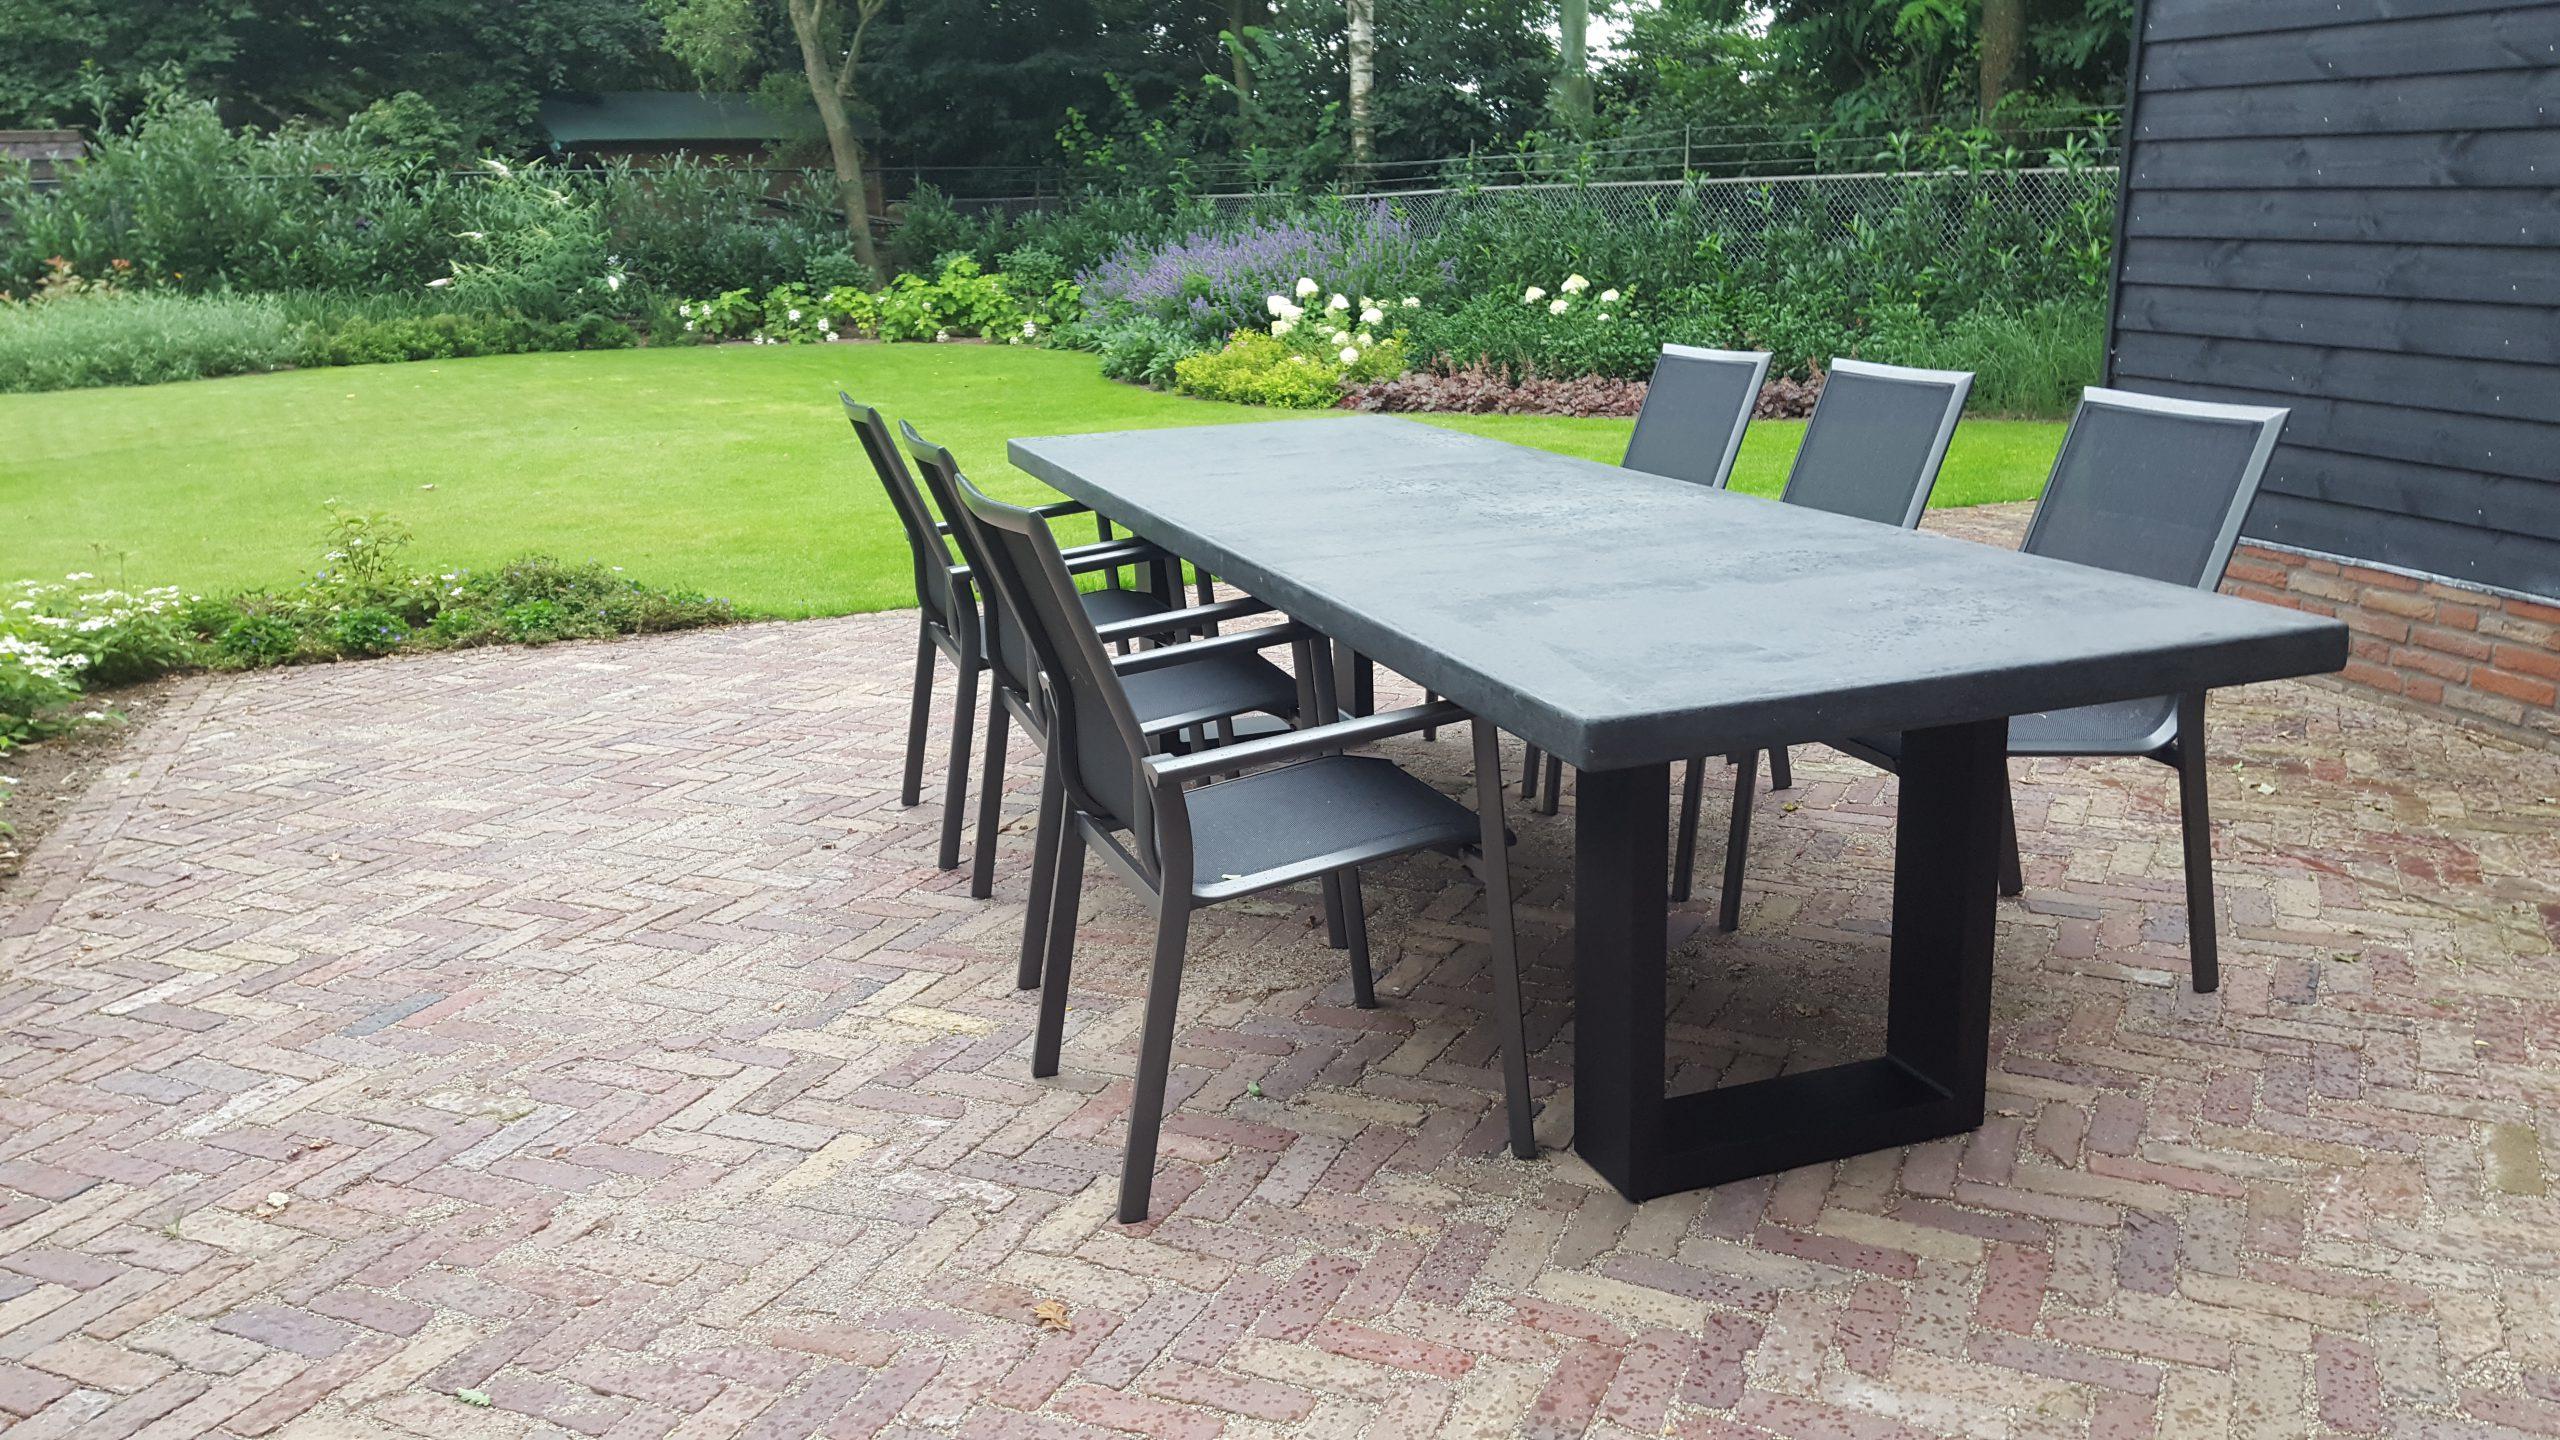 Betonlook tafel - Base 2 - Antraciet (2)